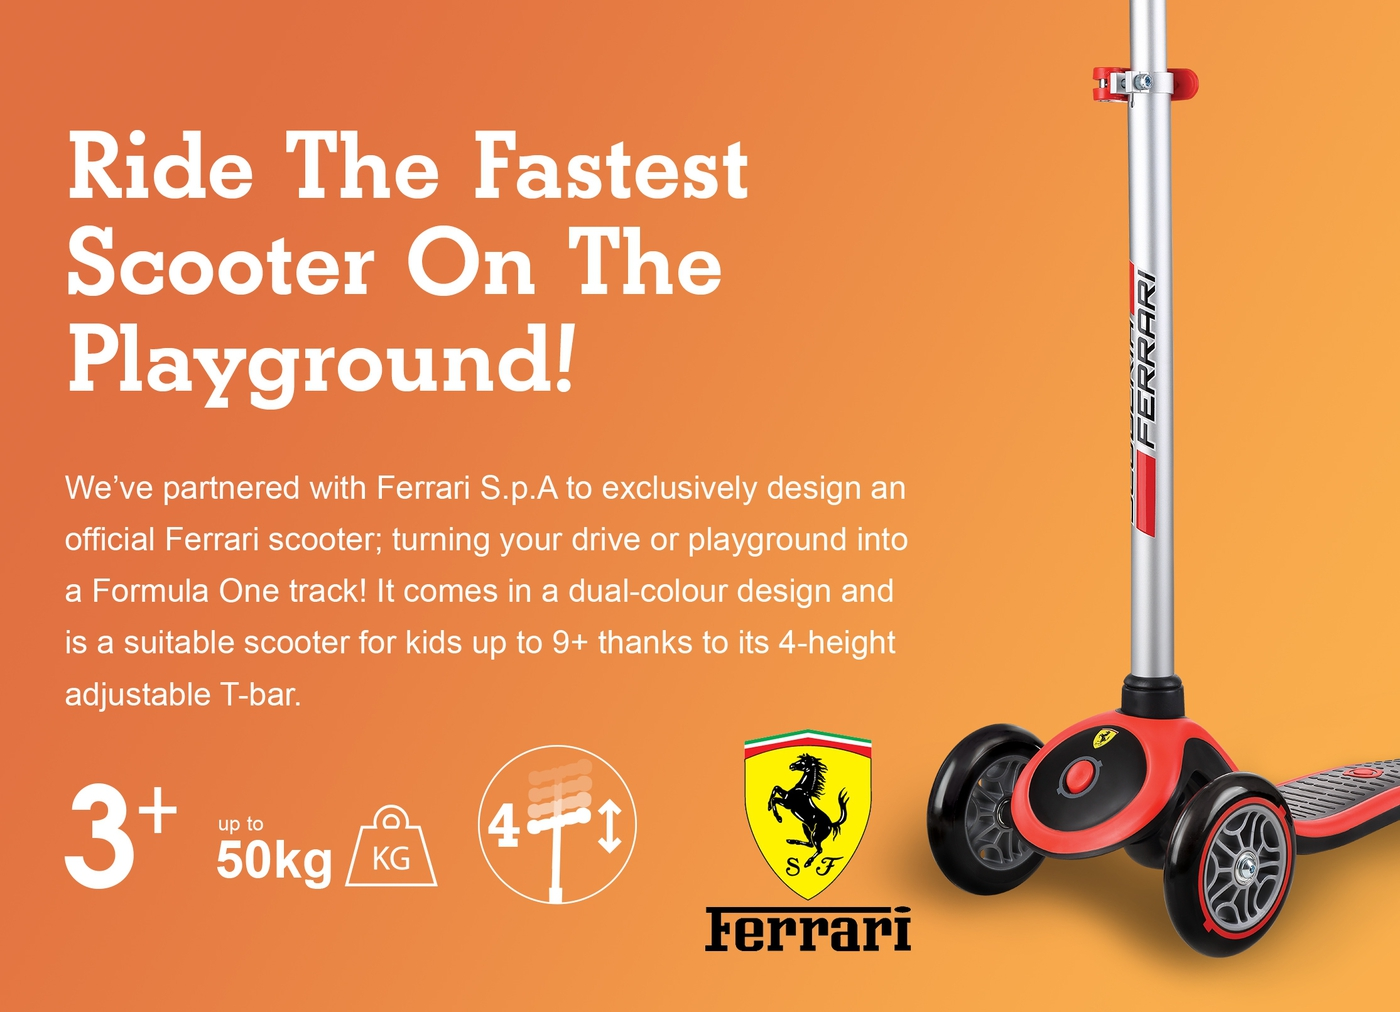 Ride The Fastest Scooter On The Playground!